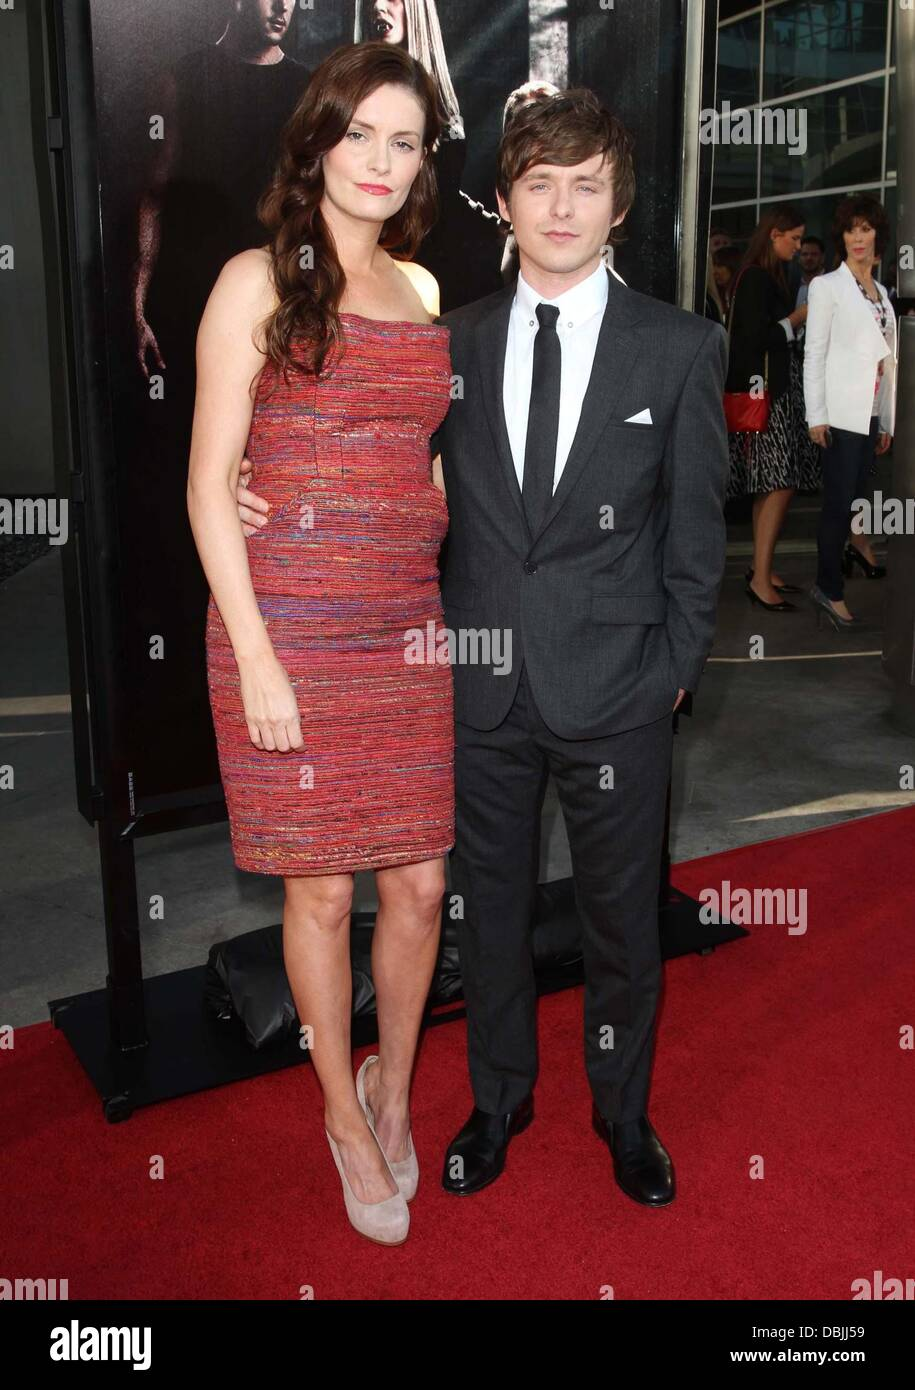 Jamie Anne Allman Marshall Allman Hbo S True Blood Season 4 Stock Photo Alamy She is perhaps best known for her role as terry marek on amc's the killing. https www alamy com stock photo jamie anne allman marshall allman hbos true blood season 4 premiere 58801717 html